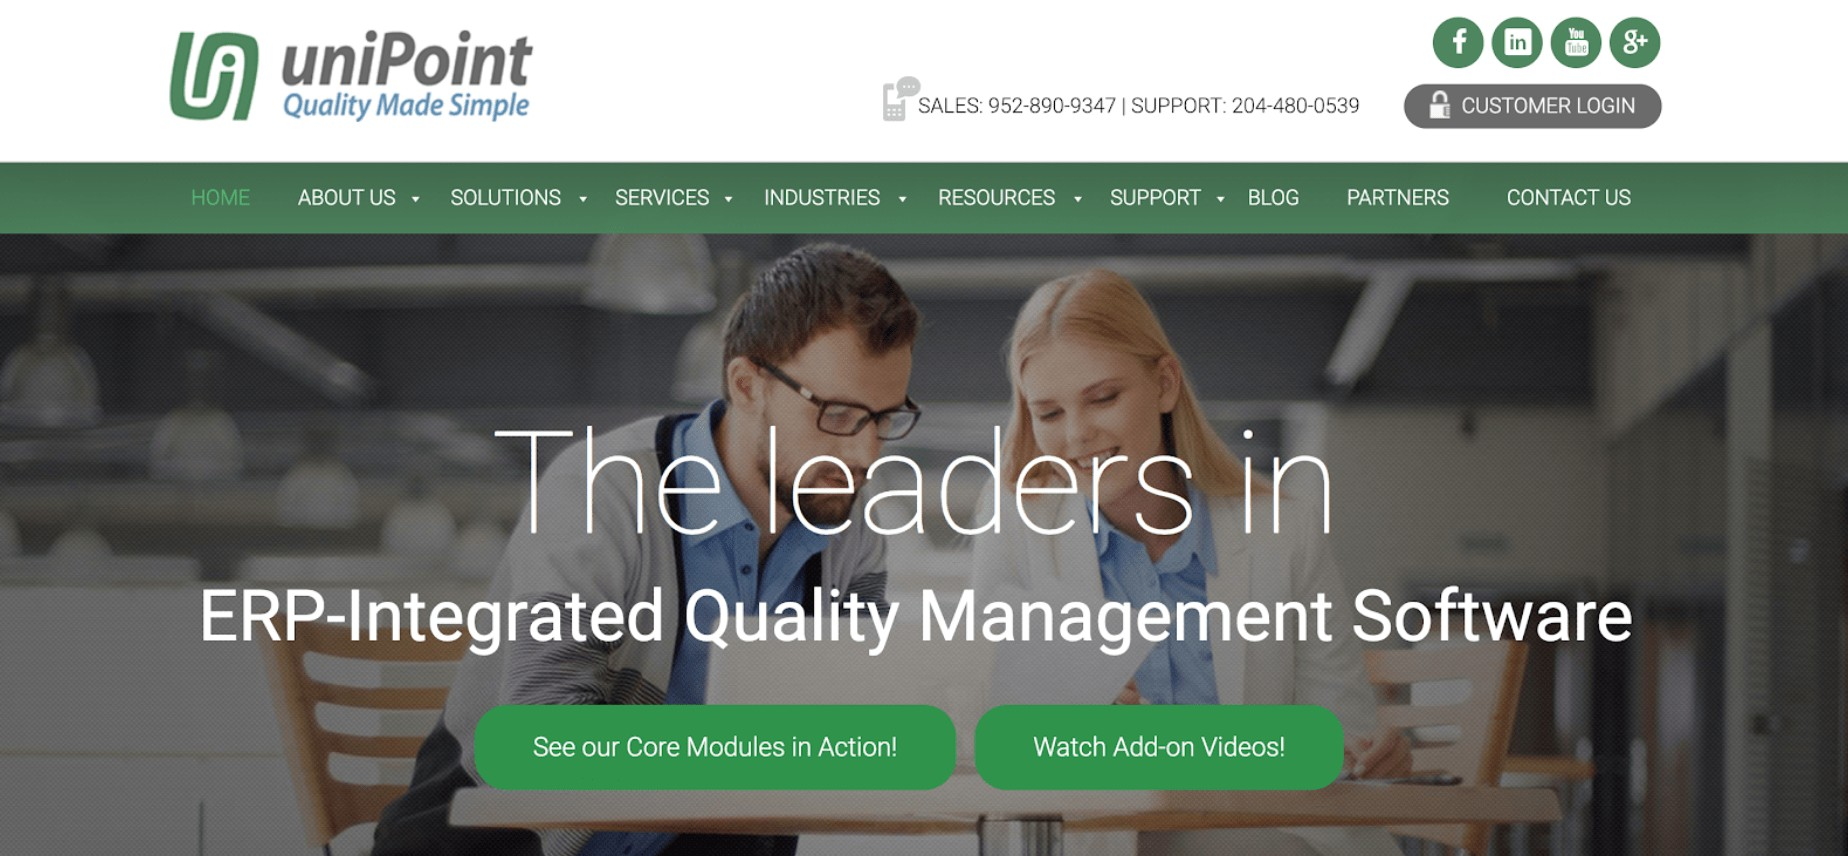 unipoint manufacturing software